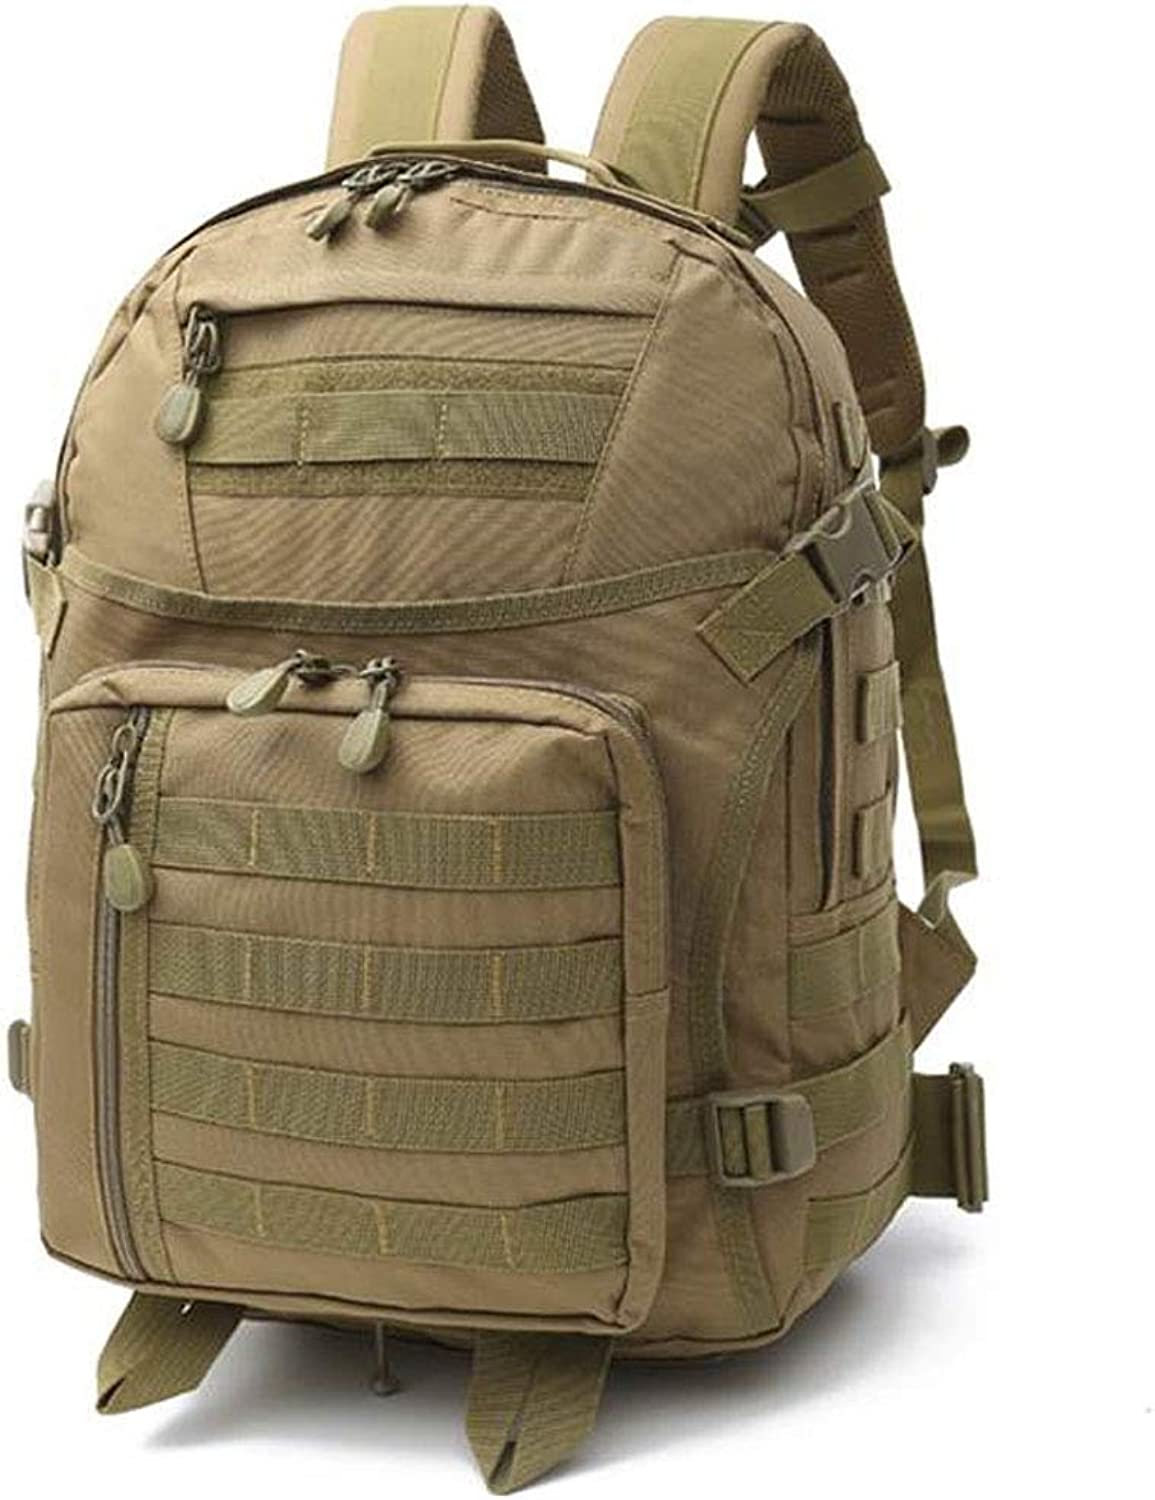 Outdoor Camping Hiking Backpack Military Tactical Assault Backpack Army Backpack Hunting Travel Sports Camping Hiking Backpack